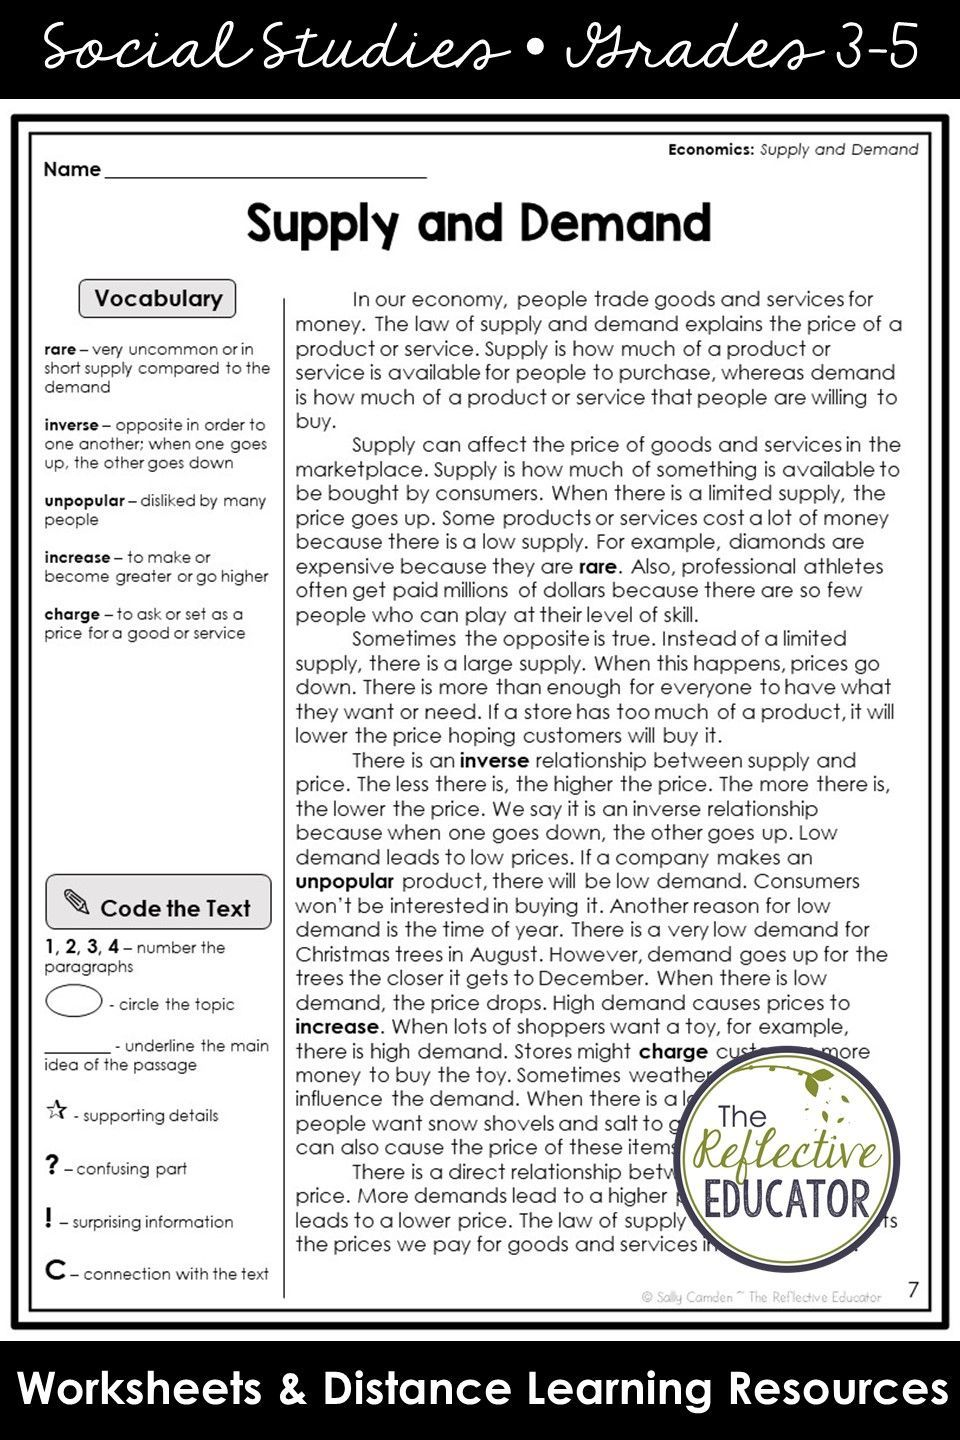 medium resolution of https://cute766.info/supply-and-demand-for-google-classroom-distance-learning-in-2020-social-studies-worksheets/